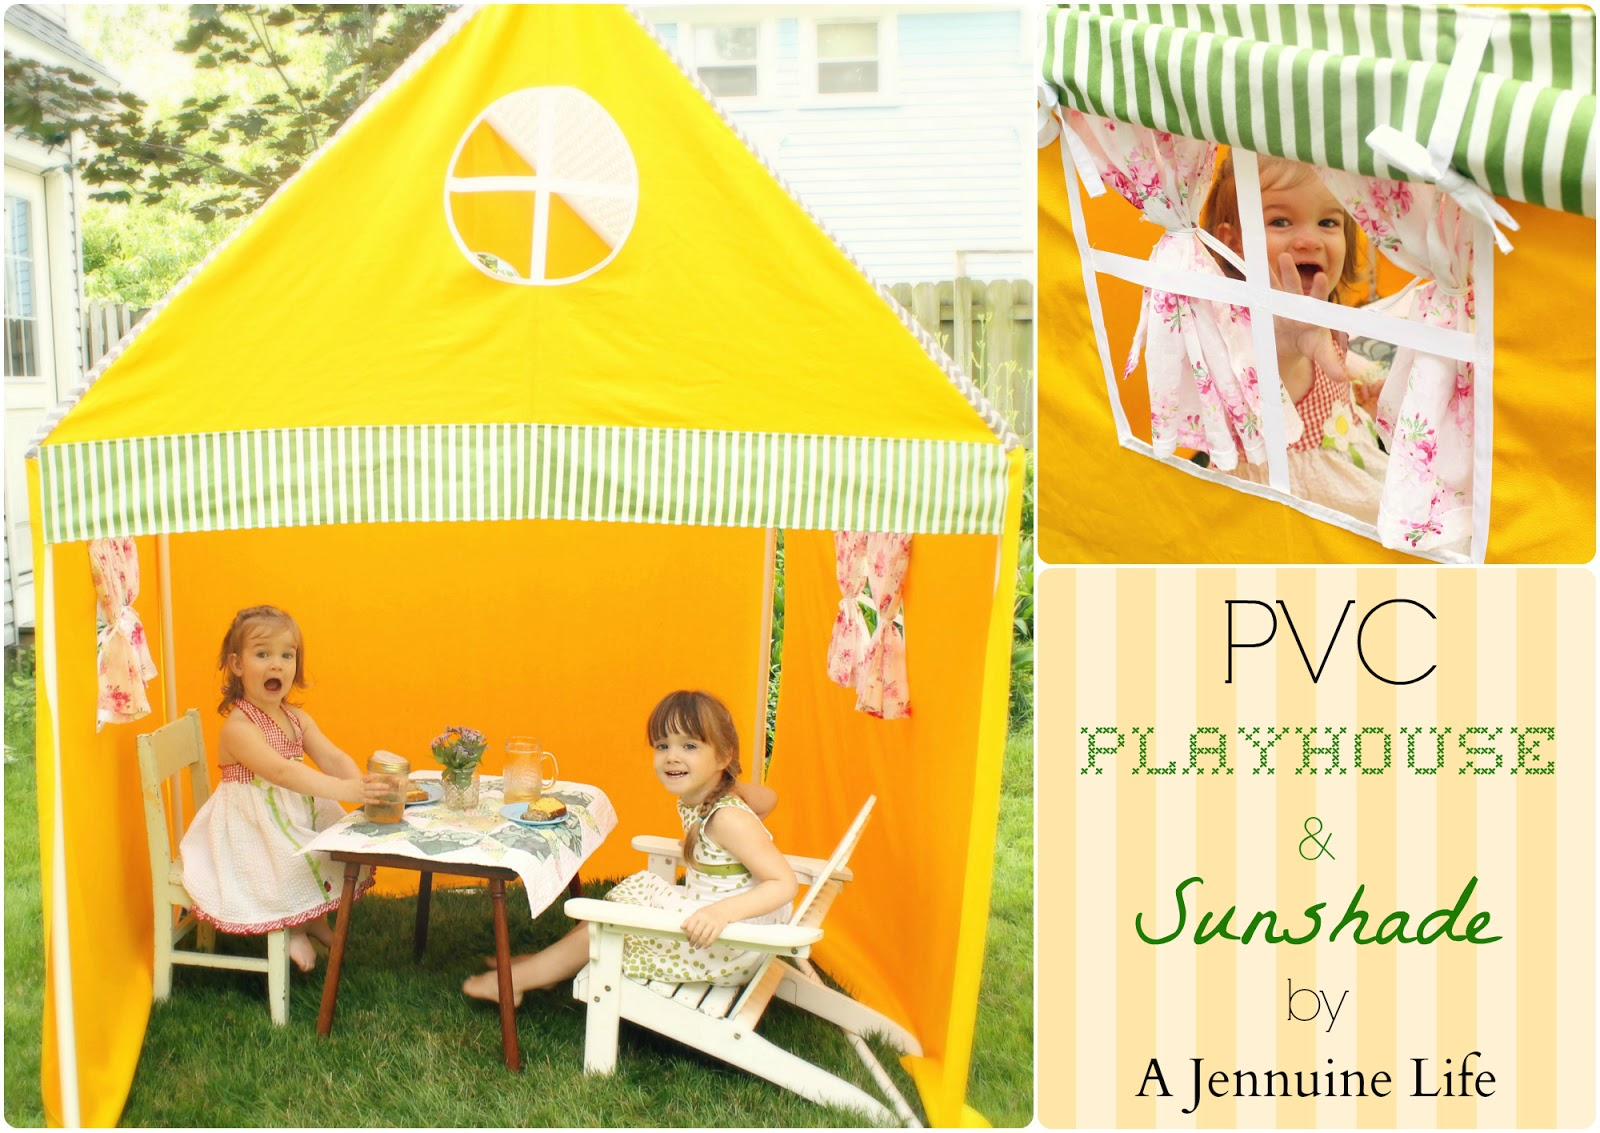 Save  sc 1 st  The Girl Creative & PVC Playhouse and Sunshade create memories with kids - The Girl ...